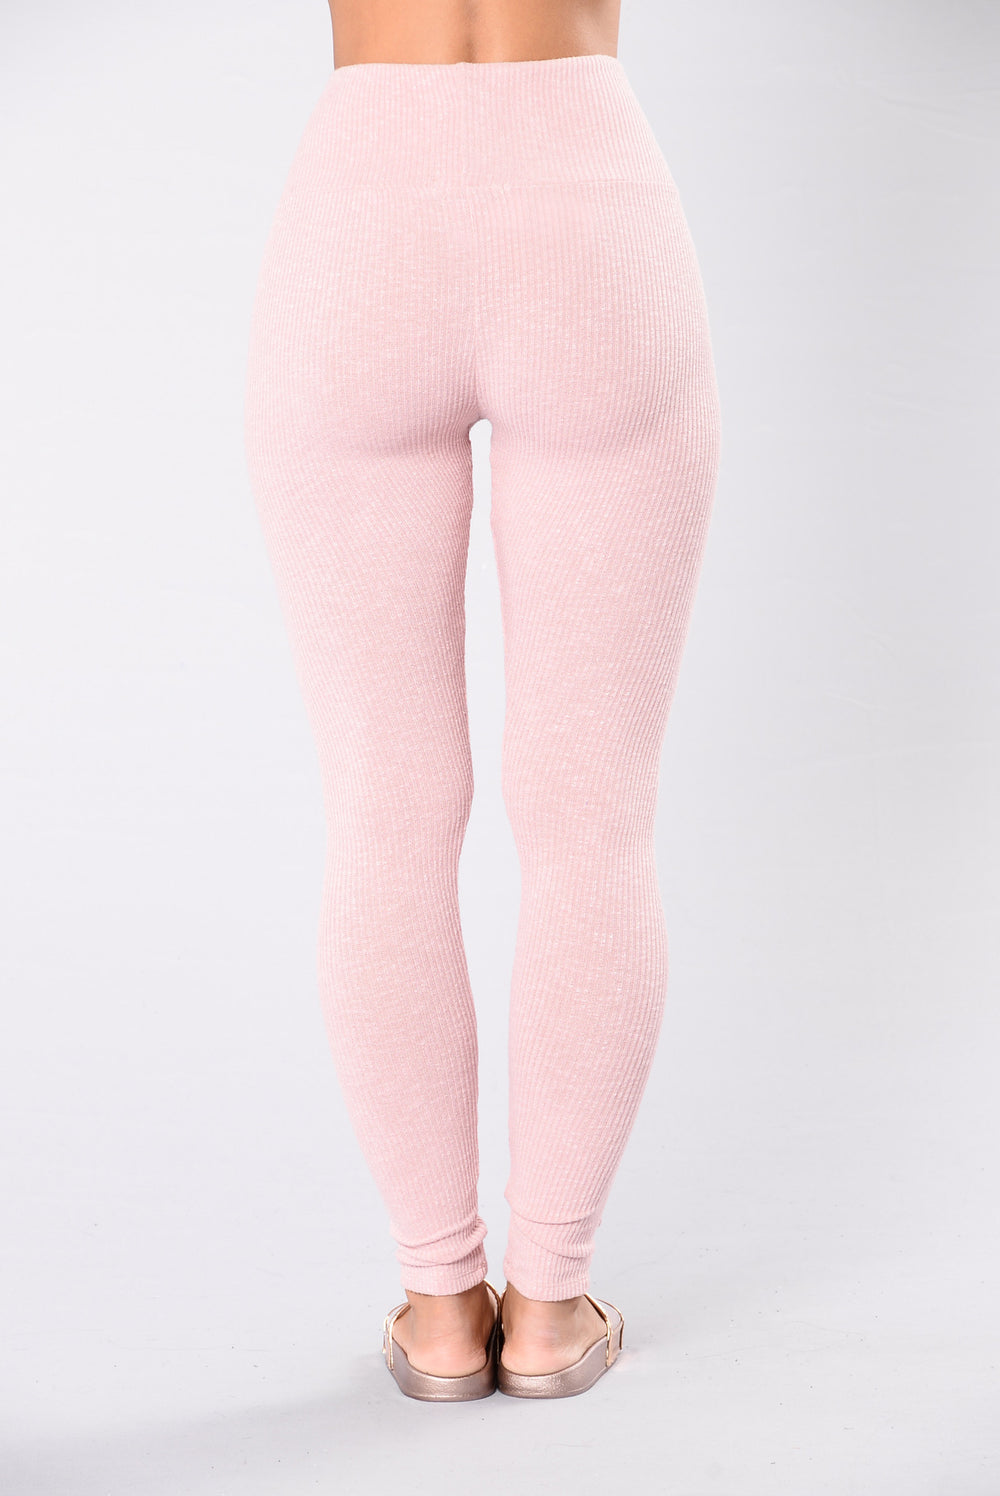 Eruption Leggings - Blush